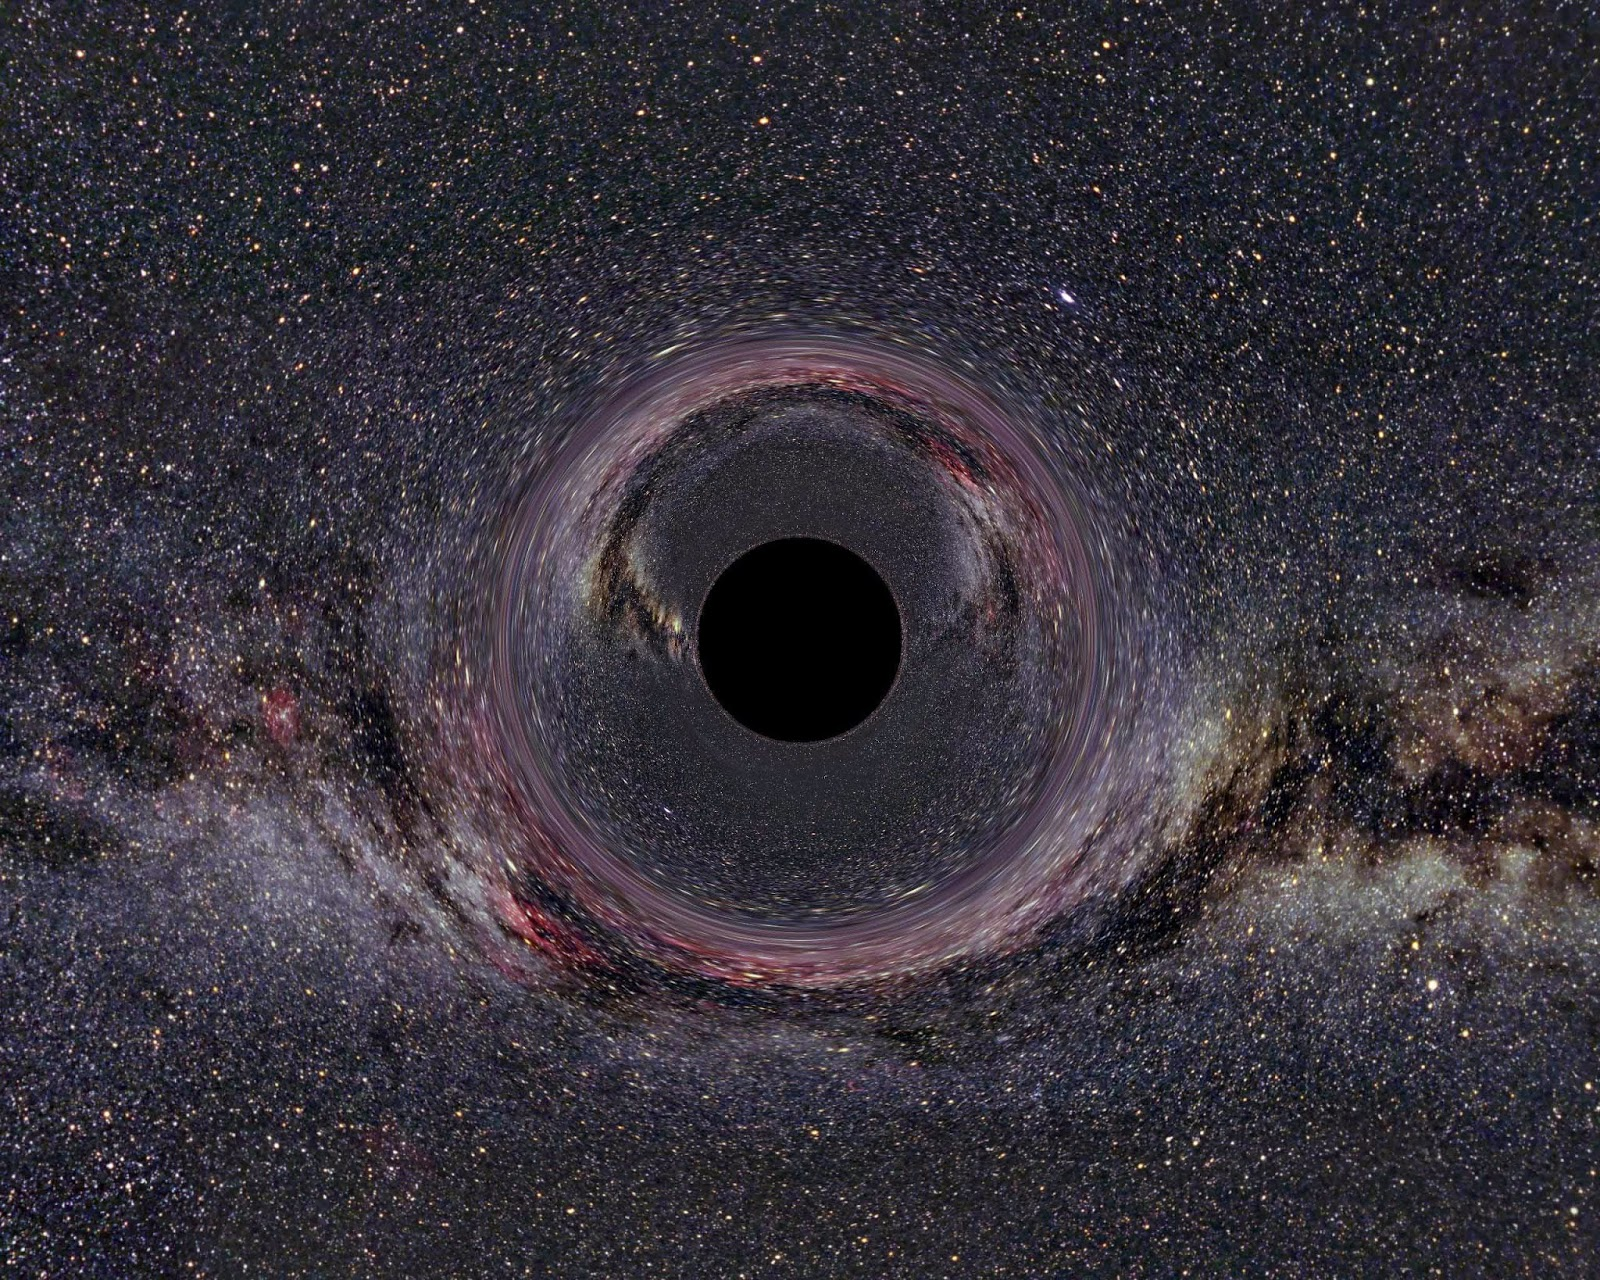 1600x1280 - Black Hole Wallpapers 27